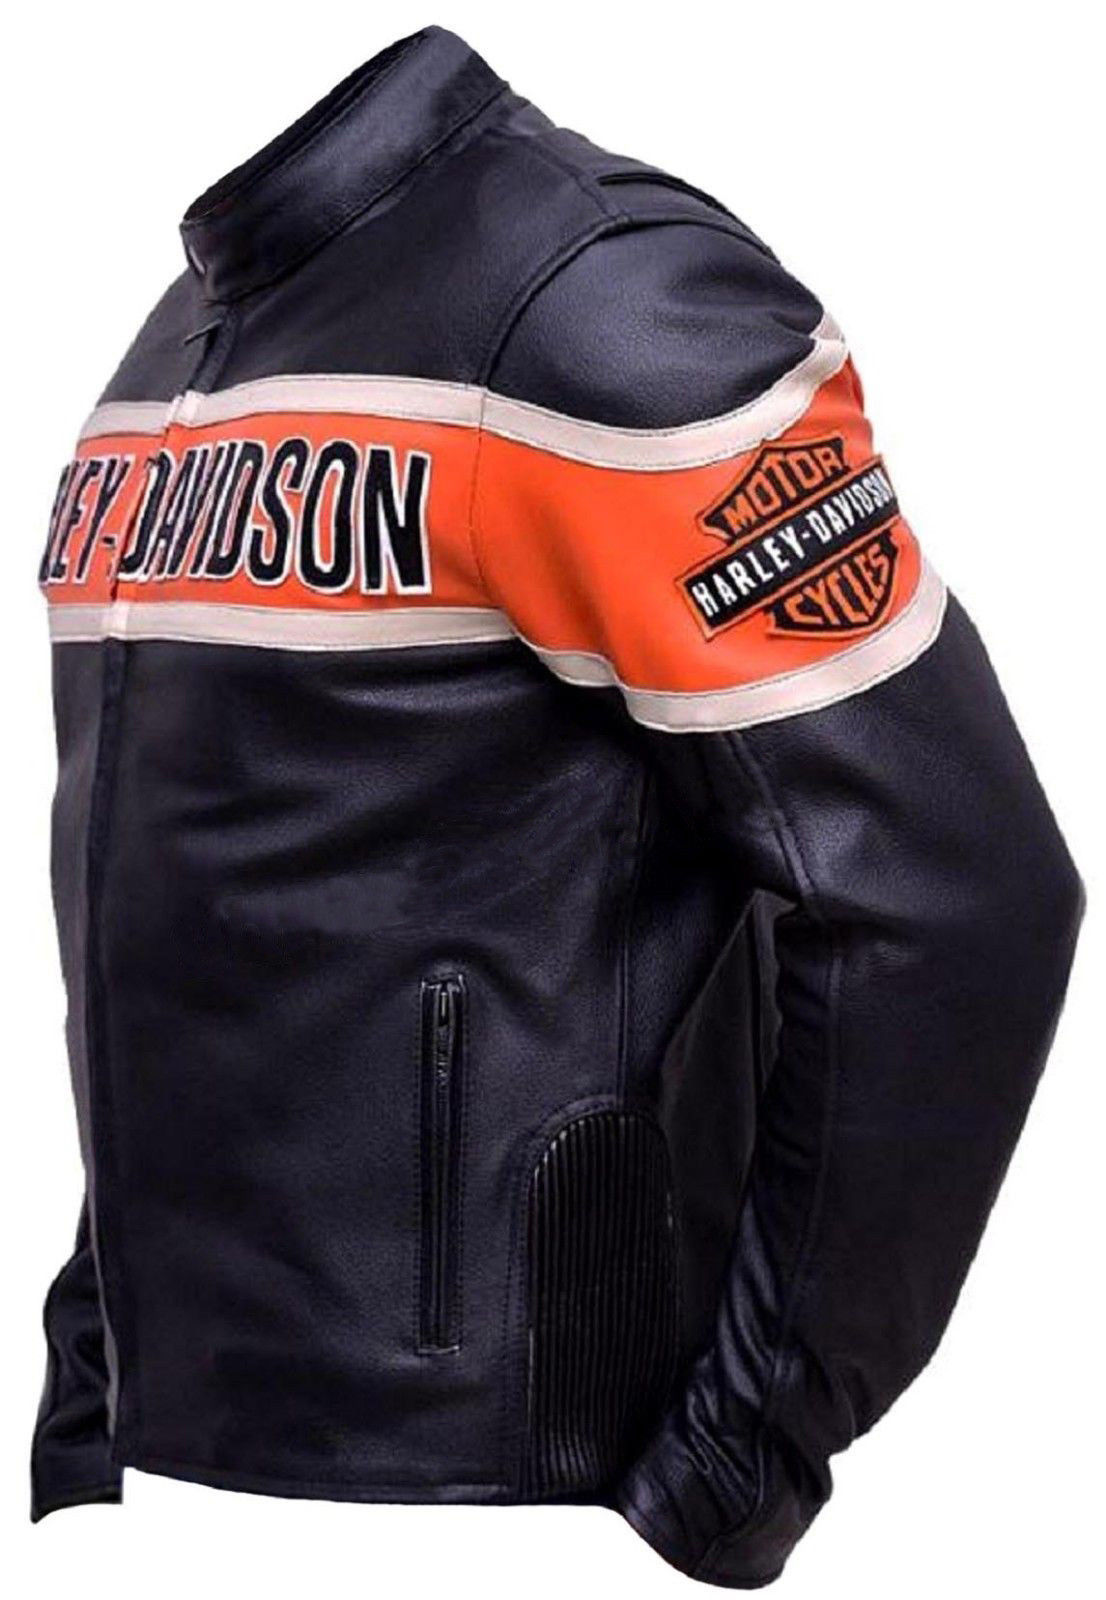 Harley Davidson Biker Genuine Leather Jacket1